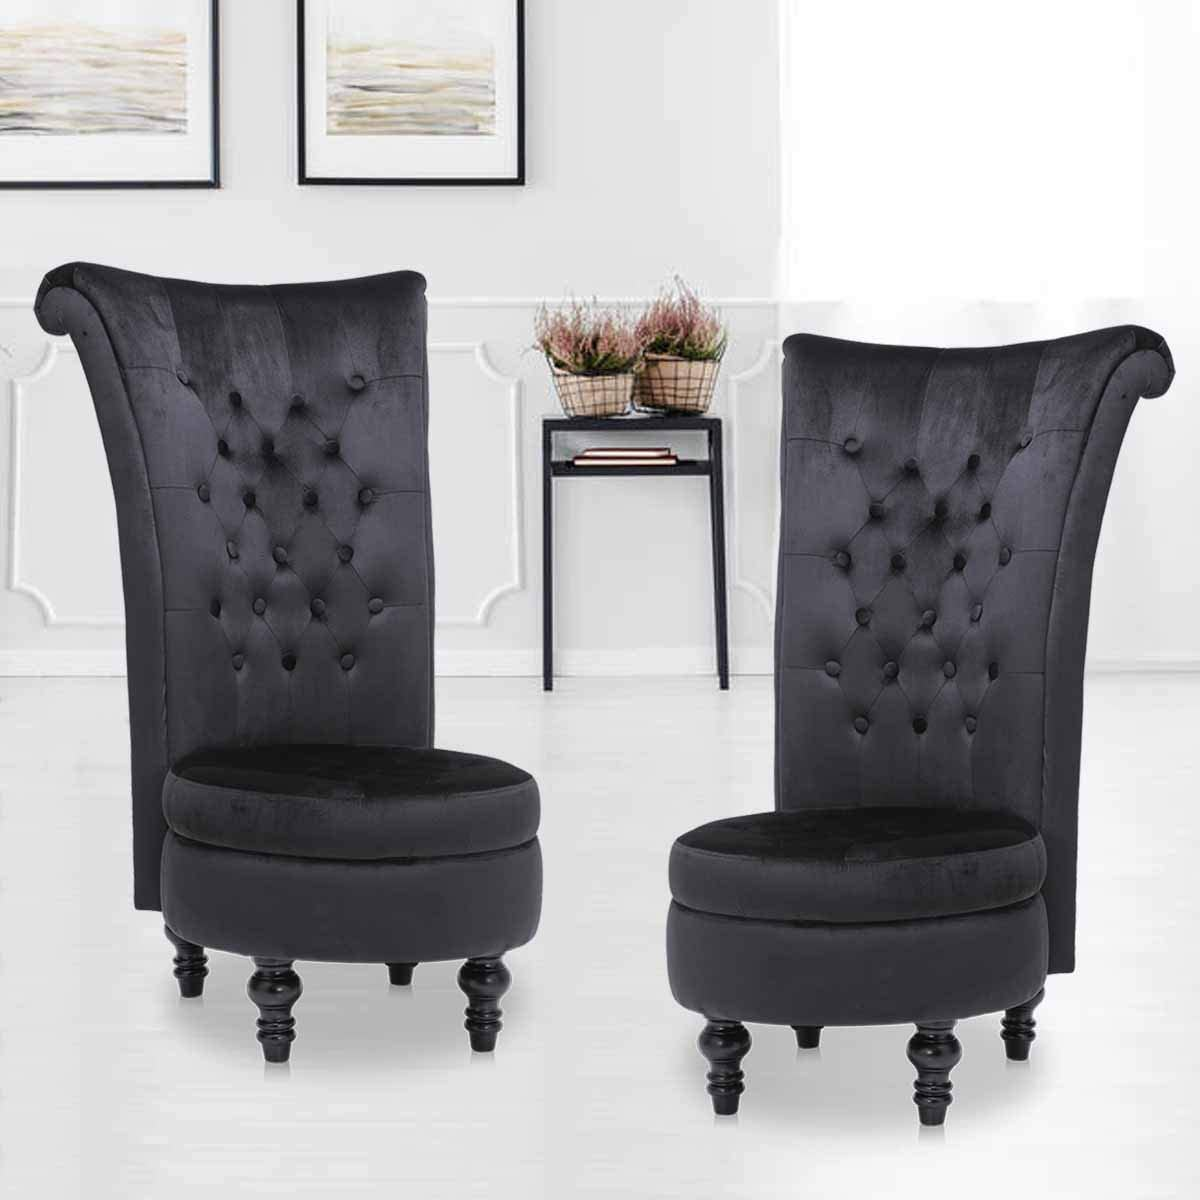 High Back Accent Chair Set of 2, Throne Chair Velvet Chair with Storage for Bedroom Living Room Dressing Table Seat Wood Legs Black 2 PCS